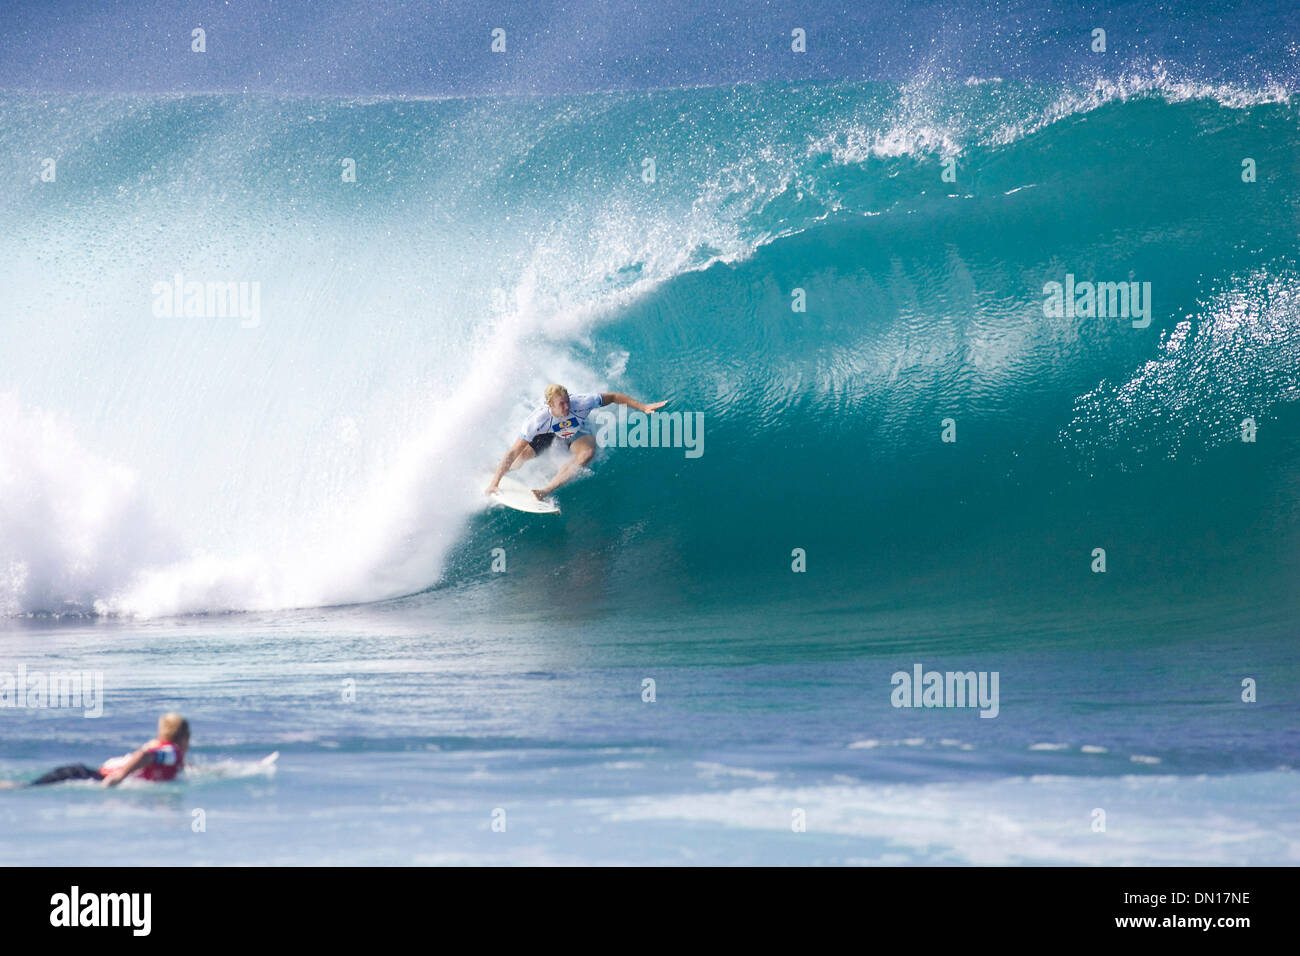 34932e291f0ba1 Haleiwa Surfing Stock Photos   Haleiwa Surfing Stock Images - Page 6 ...